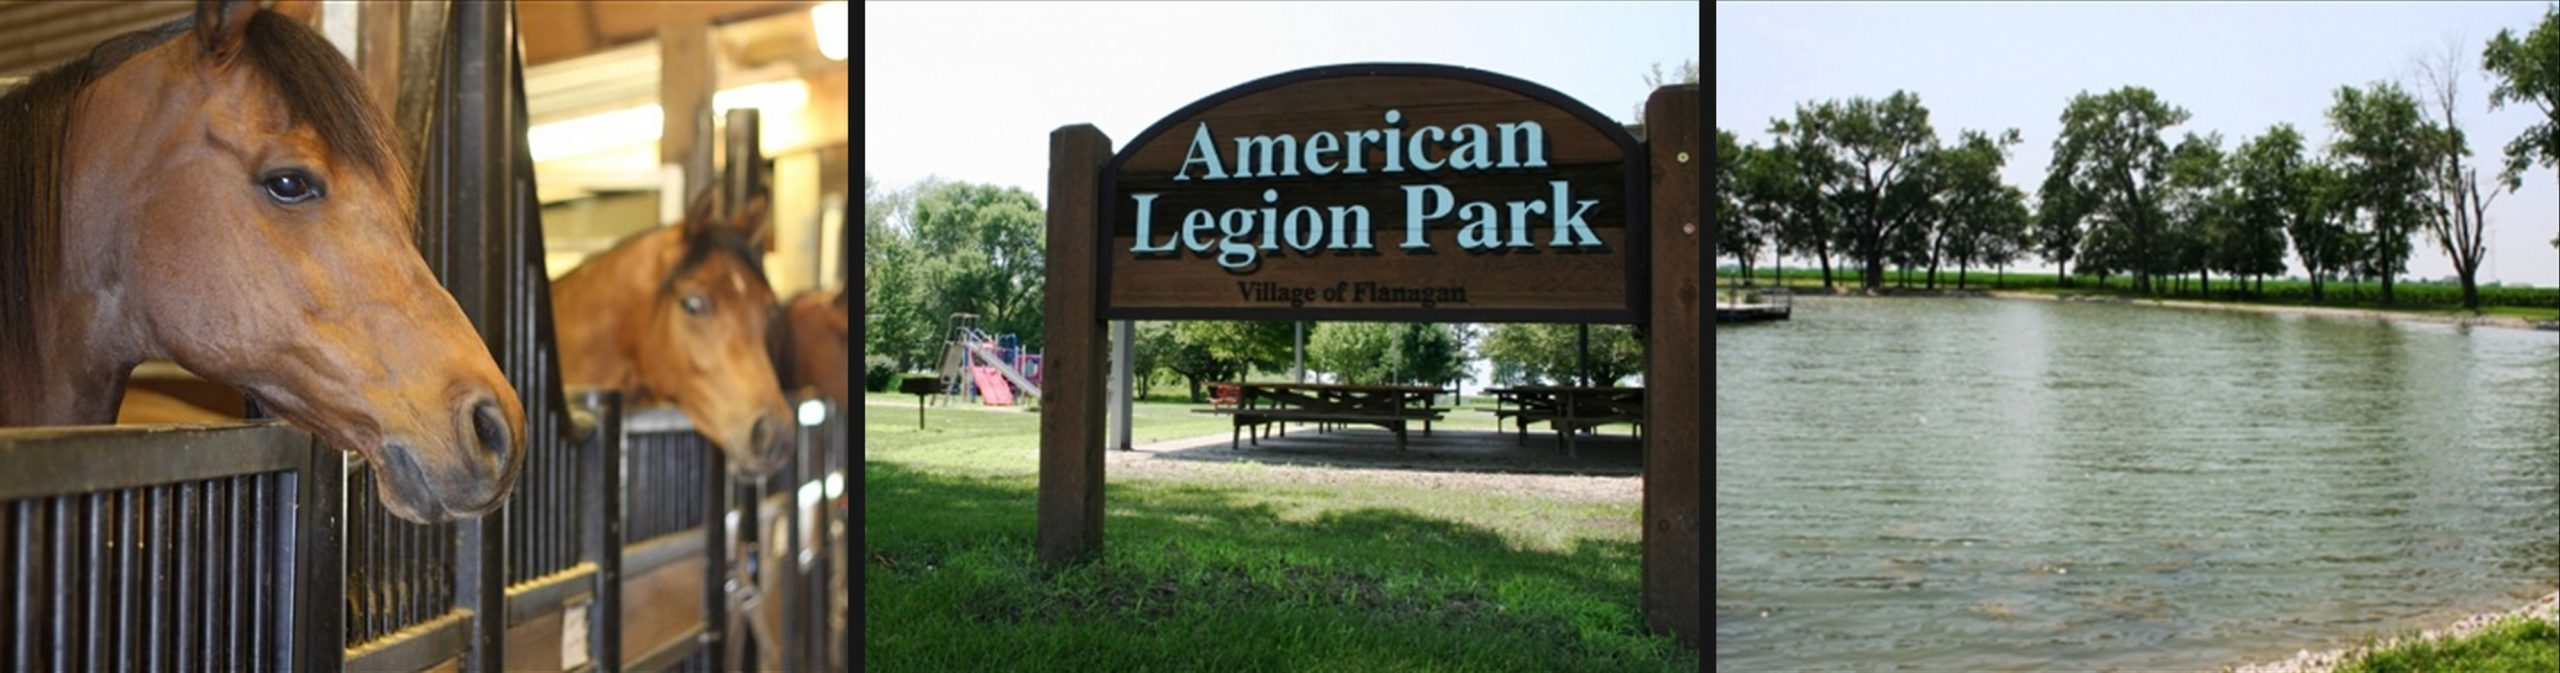 Flanagan Illinois Attractions: Horses at Salem4Youth ranch, American Legion Park, and lake with trees